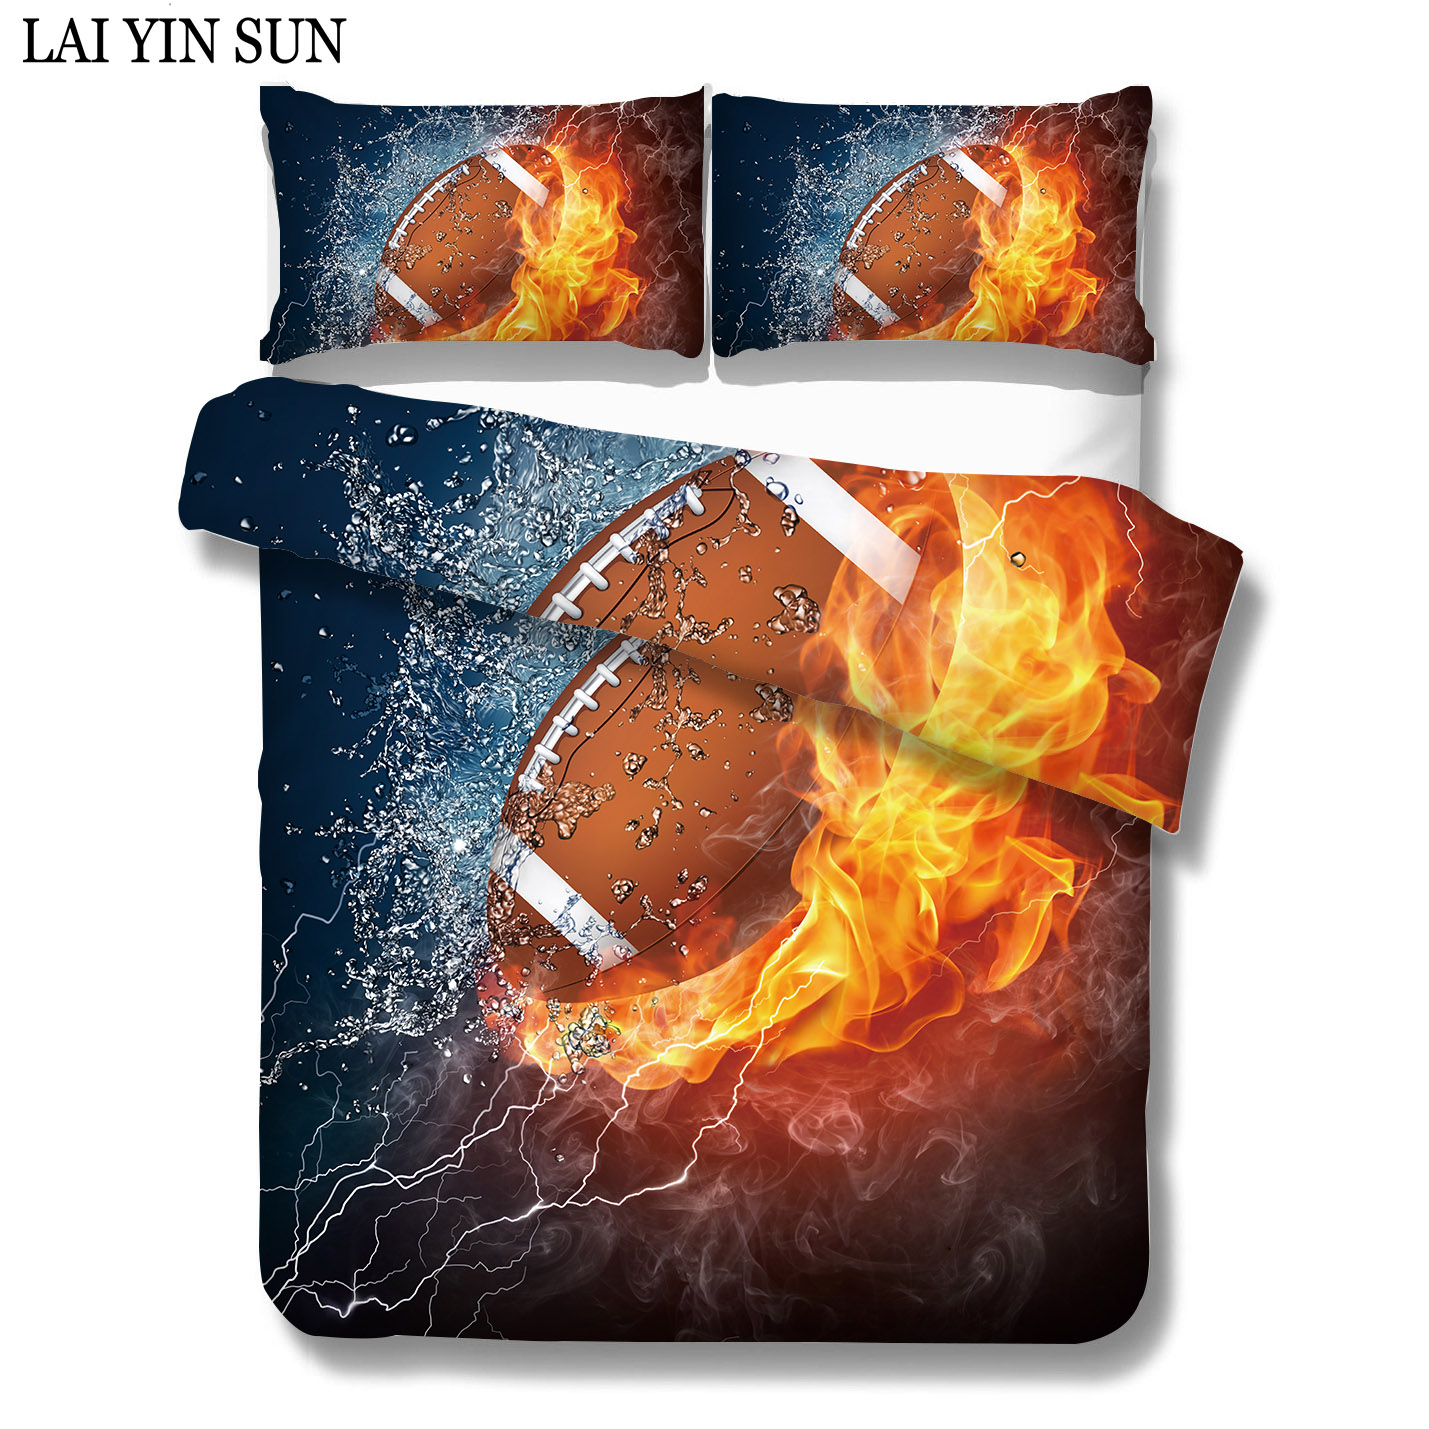 Lai Yin Sun Colored Rugby fire Bedding Set King Size Luxury Print Bedclothes 3D Universe Duvet Cover 3PCS Dropshipping